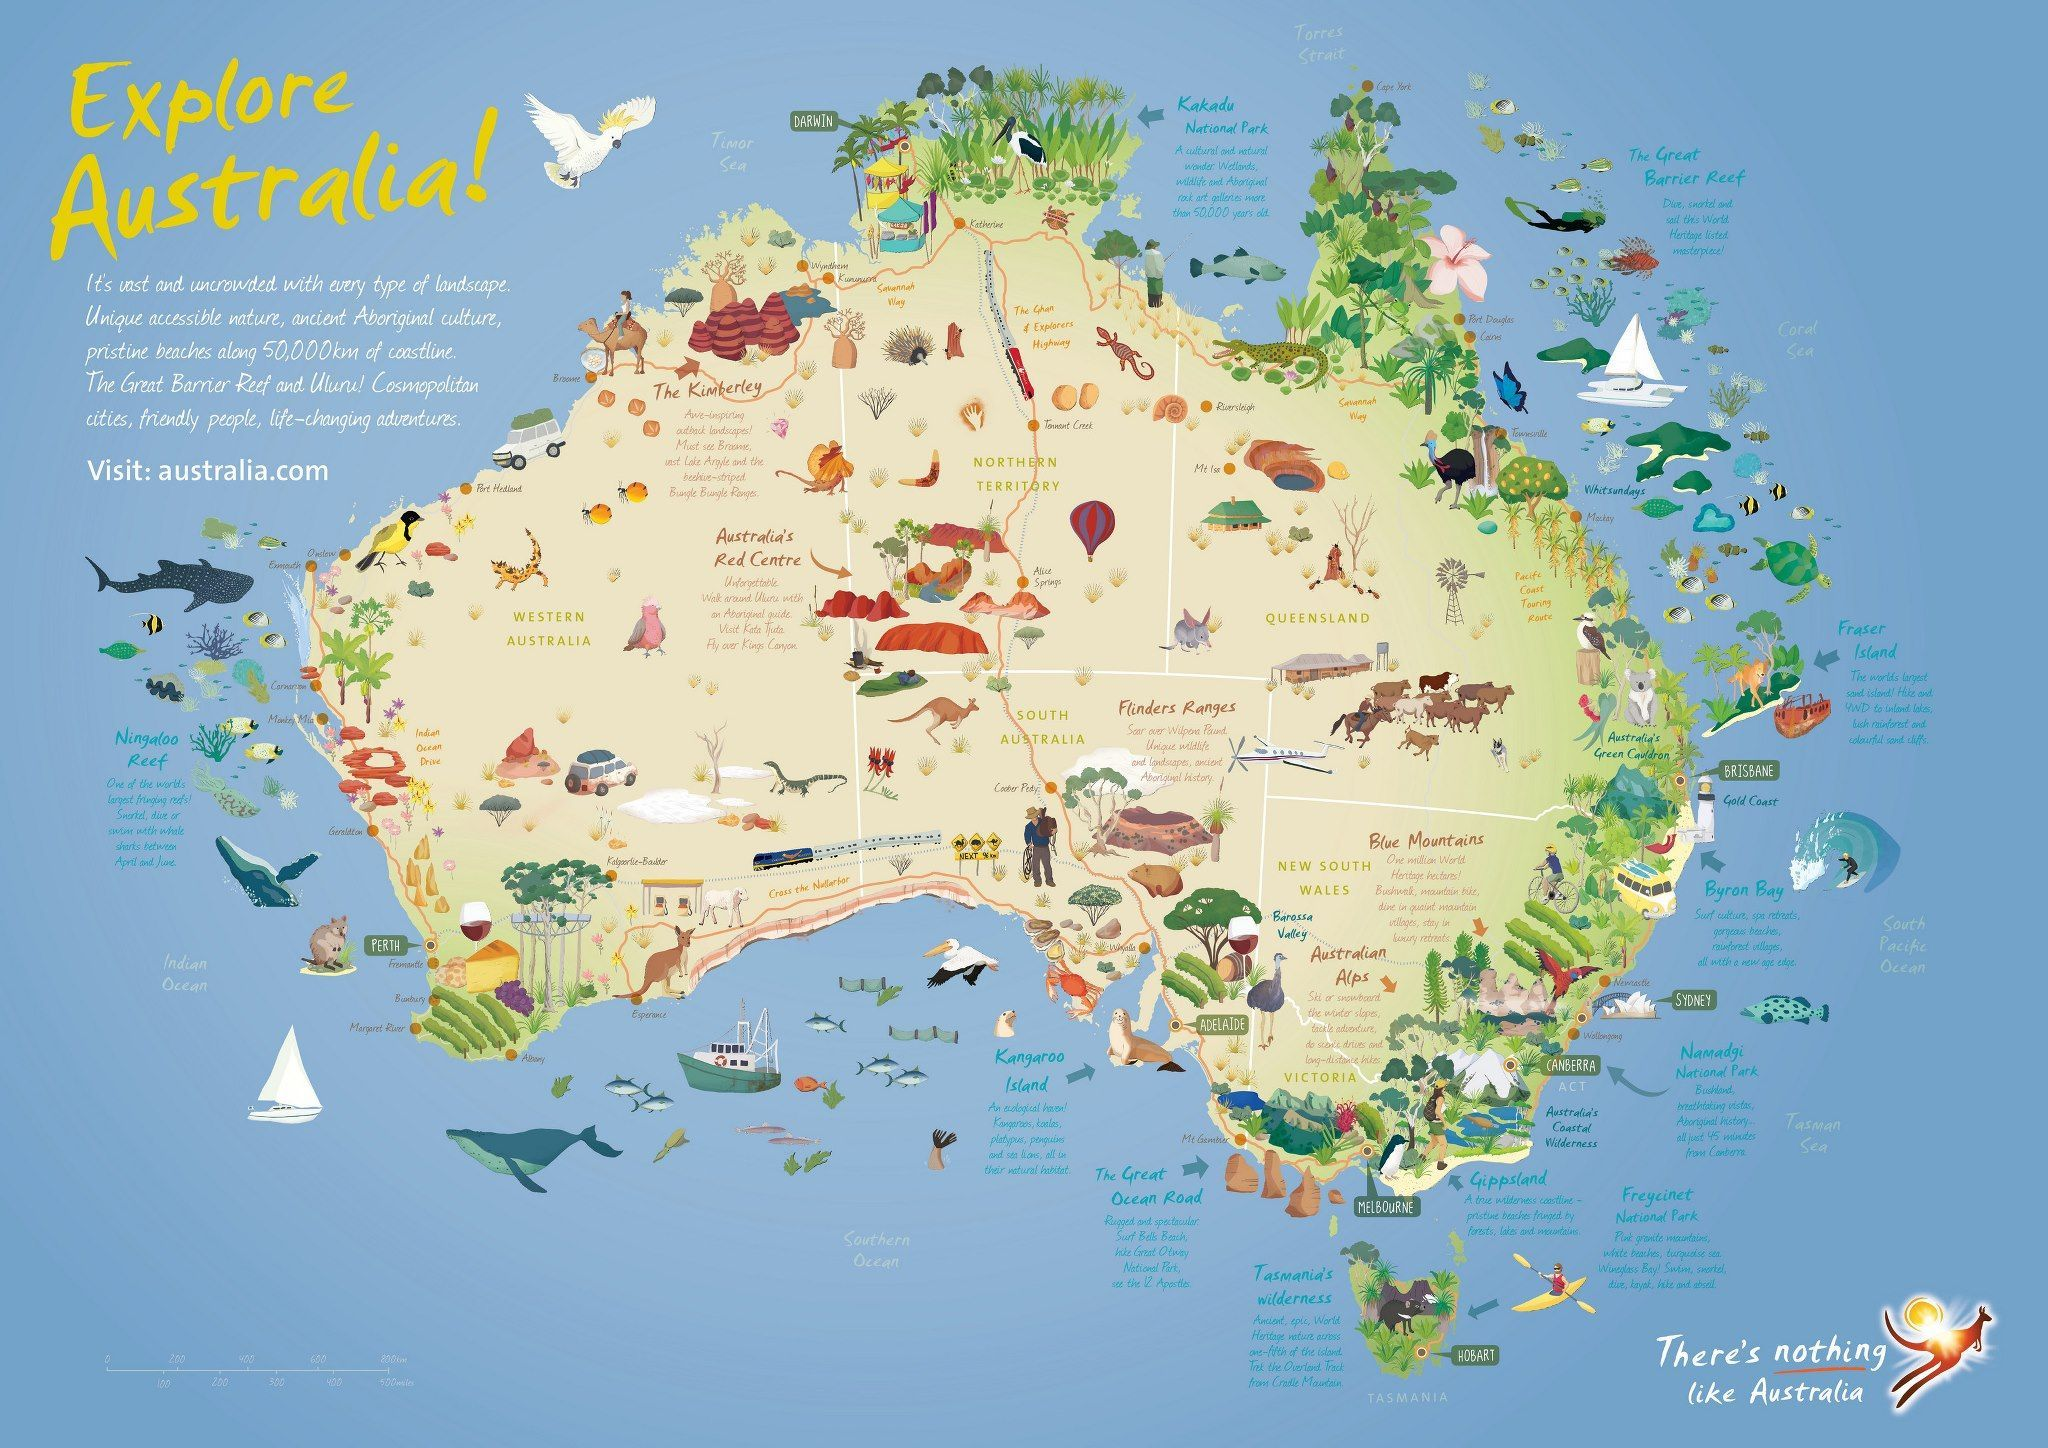 Australia travel map showing key features/attractions